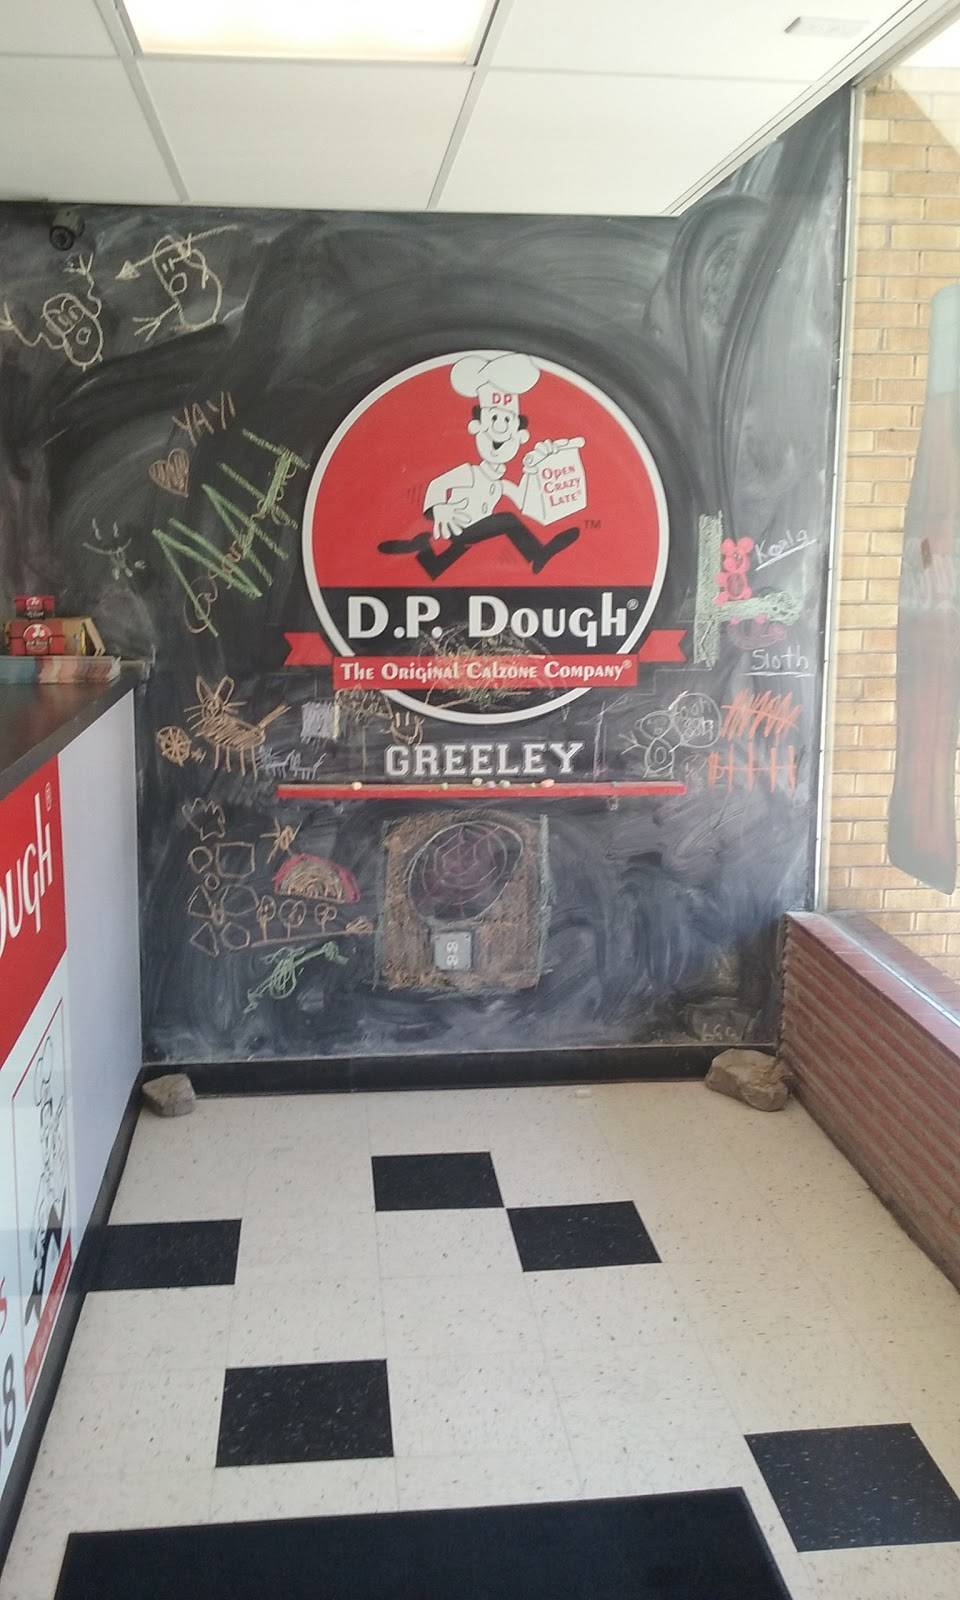 D.P. Dough | meal delivery | 911 16th St, Greeley, CO 80631, USA | 9703368888 OR +1 970-336-8888